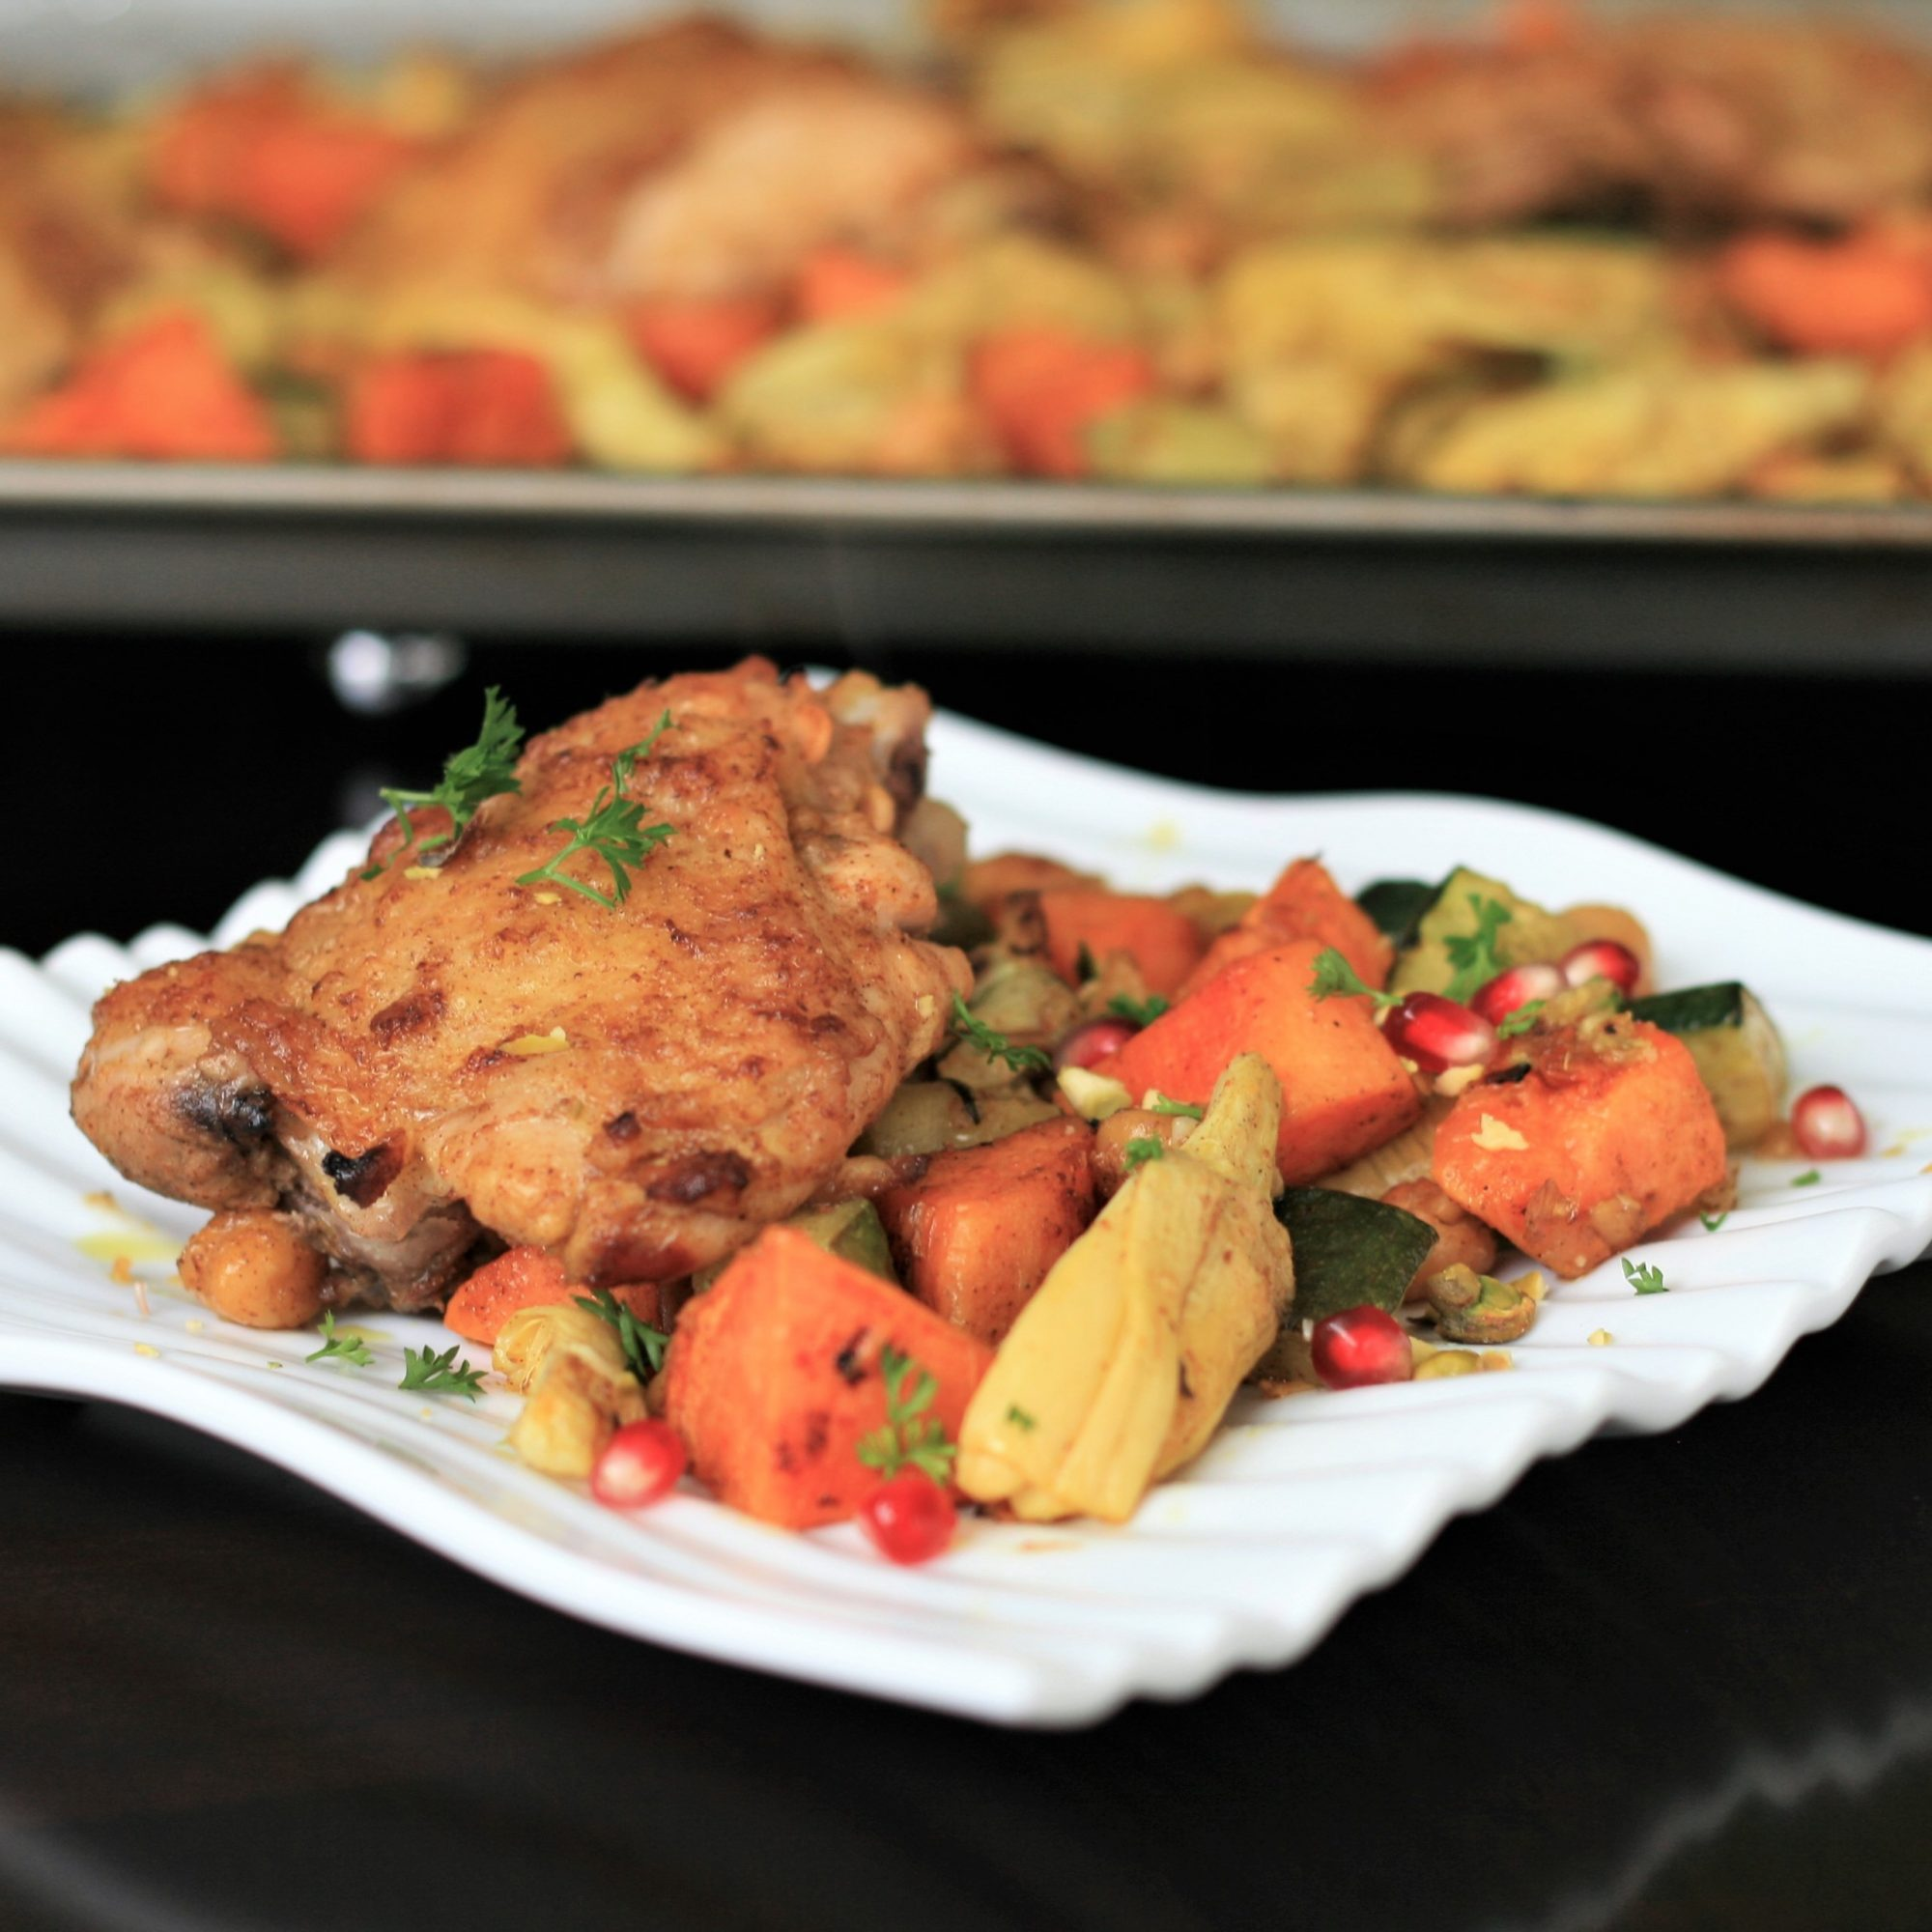 a square white plate with chicken and roasted vegetables in the foreground, with a sheet pan of chicken in the background